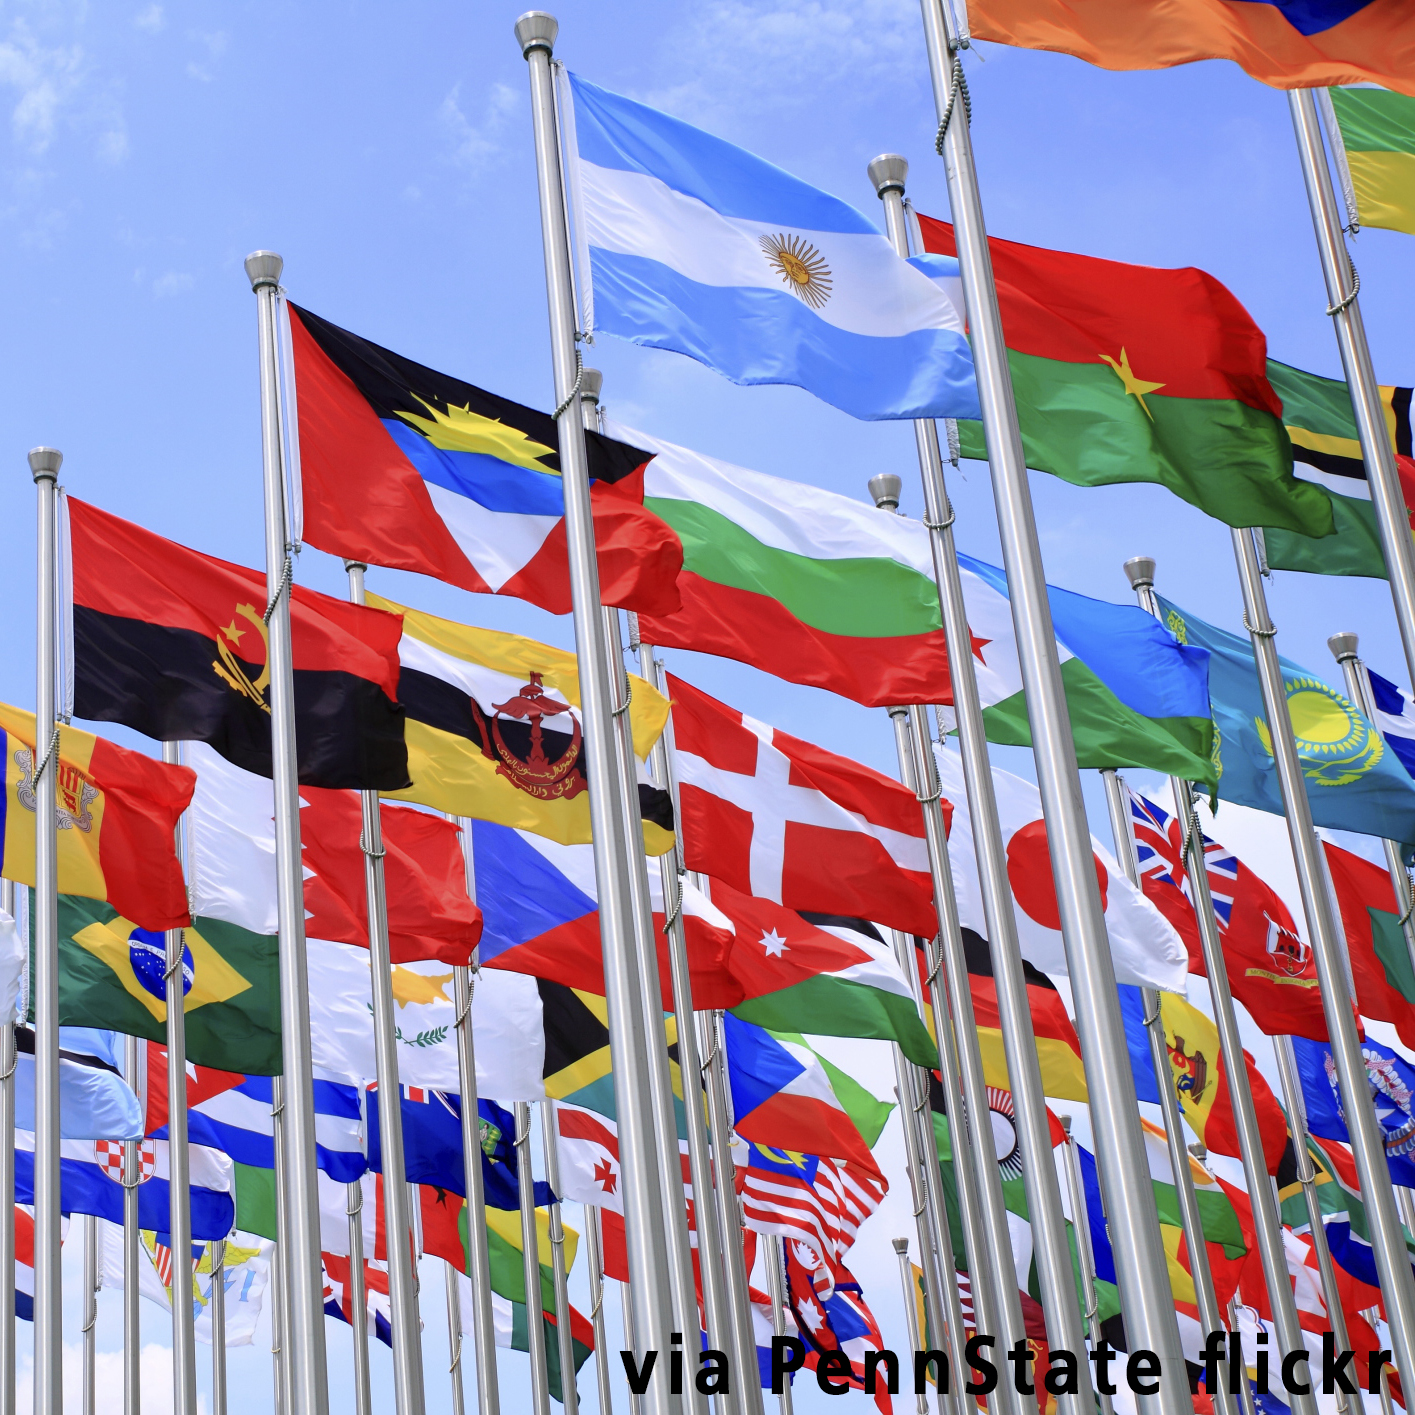 International flags via PennState flickr